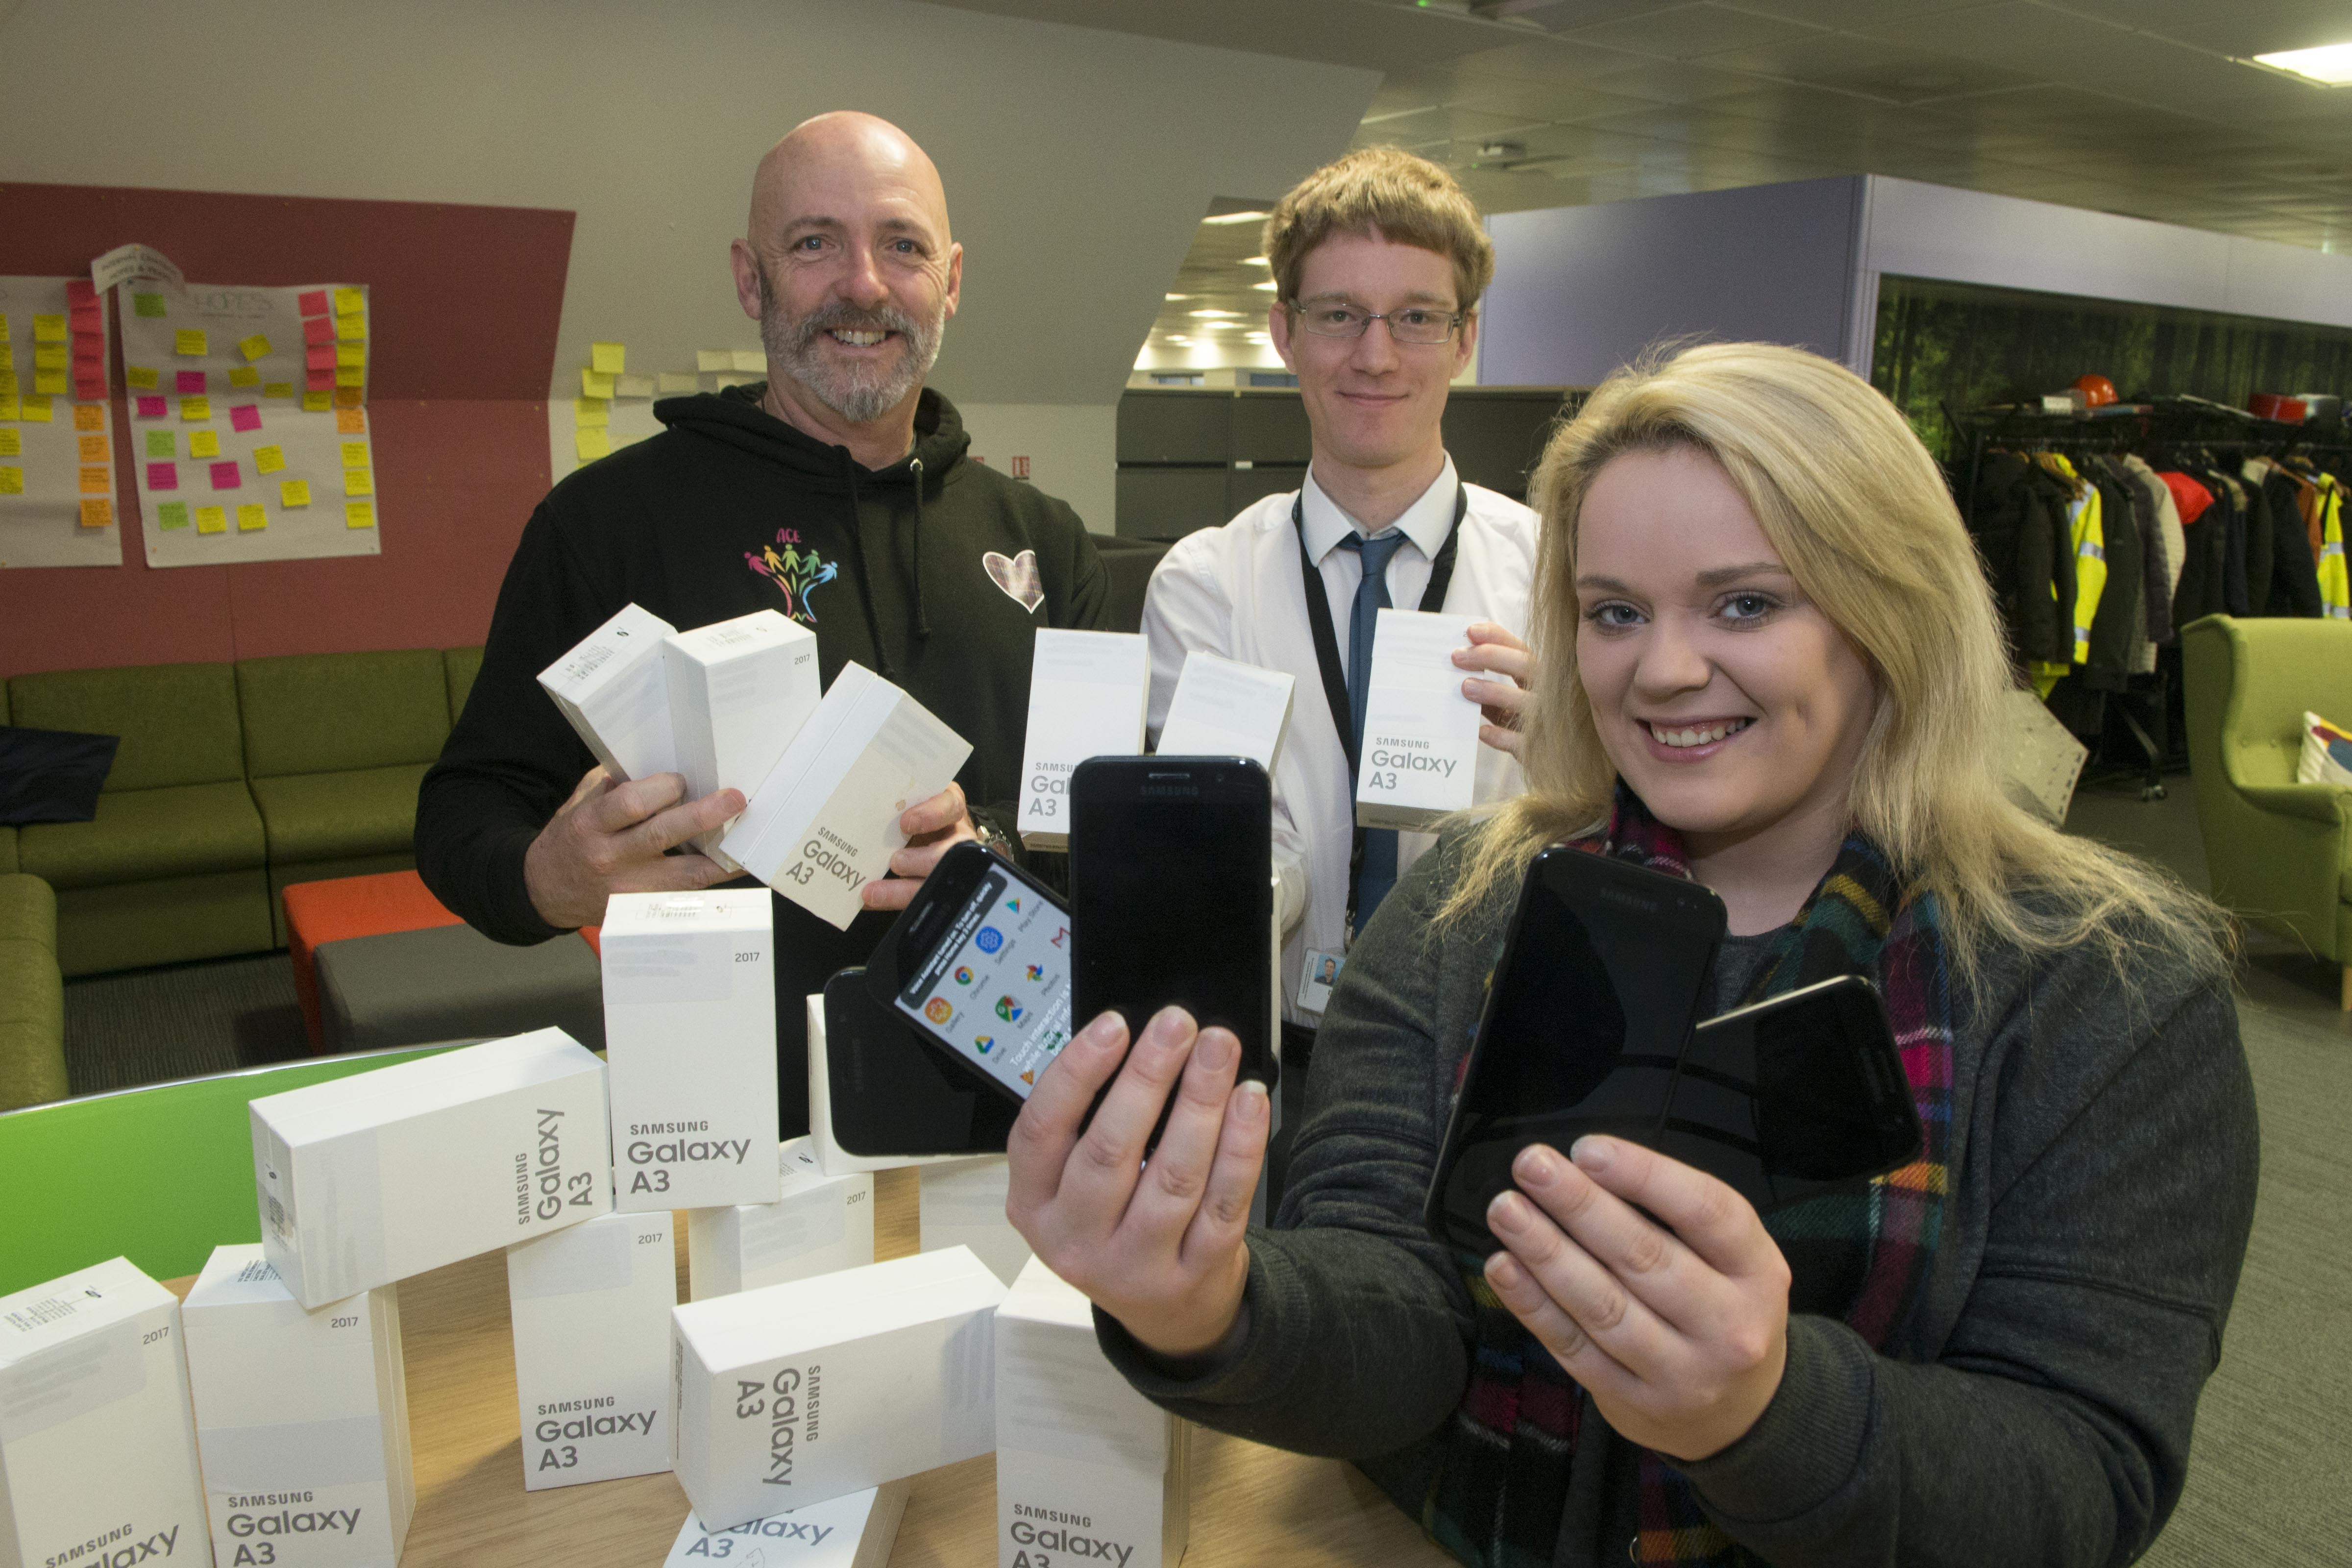 26/11/19 L-R Peter Melrose (Development Officer -Who Cares Scotland), David Barlett (Aberdeen City Council I.T Analyst0 Tiffany Burnett (Aberdeen City Council Children Rights Development Officer)  Care experienced young people are to be provided with surplus staff mobile phones from Aberdeen City Council following a request made by the city's Champions Board which brings together care experienced young people with multiple public partners who have corporate parenting responsibilities. The phones became surplus to requirements following a recent upgrade and the council's Integrated Children and Family Services team have been working with their IT colleagues to clear data and make the devices usable again.